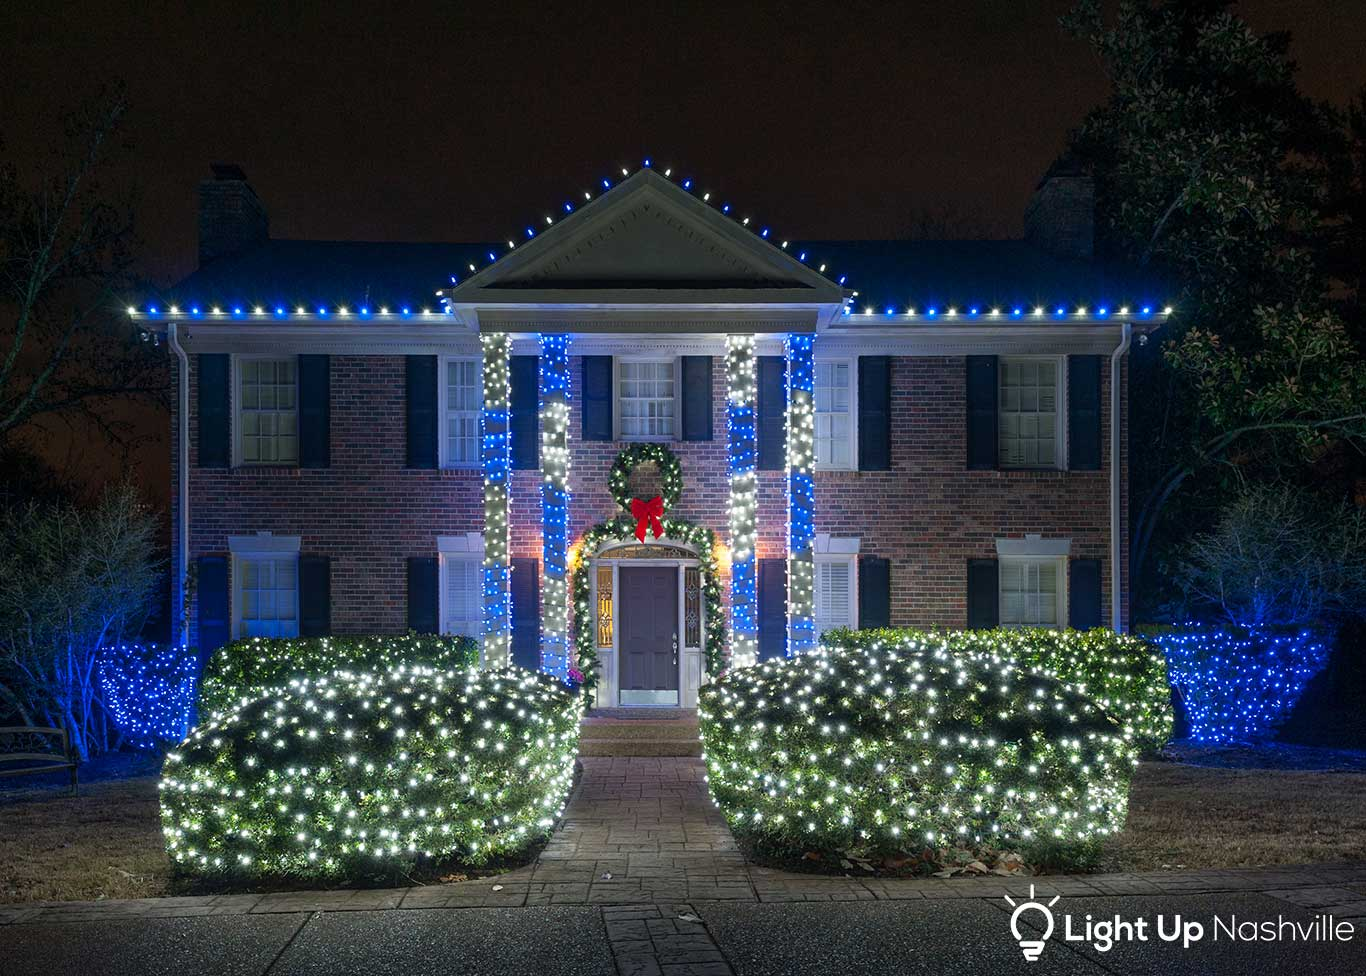 5 Reasons to Hire A Professional Holiday Lighting Service